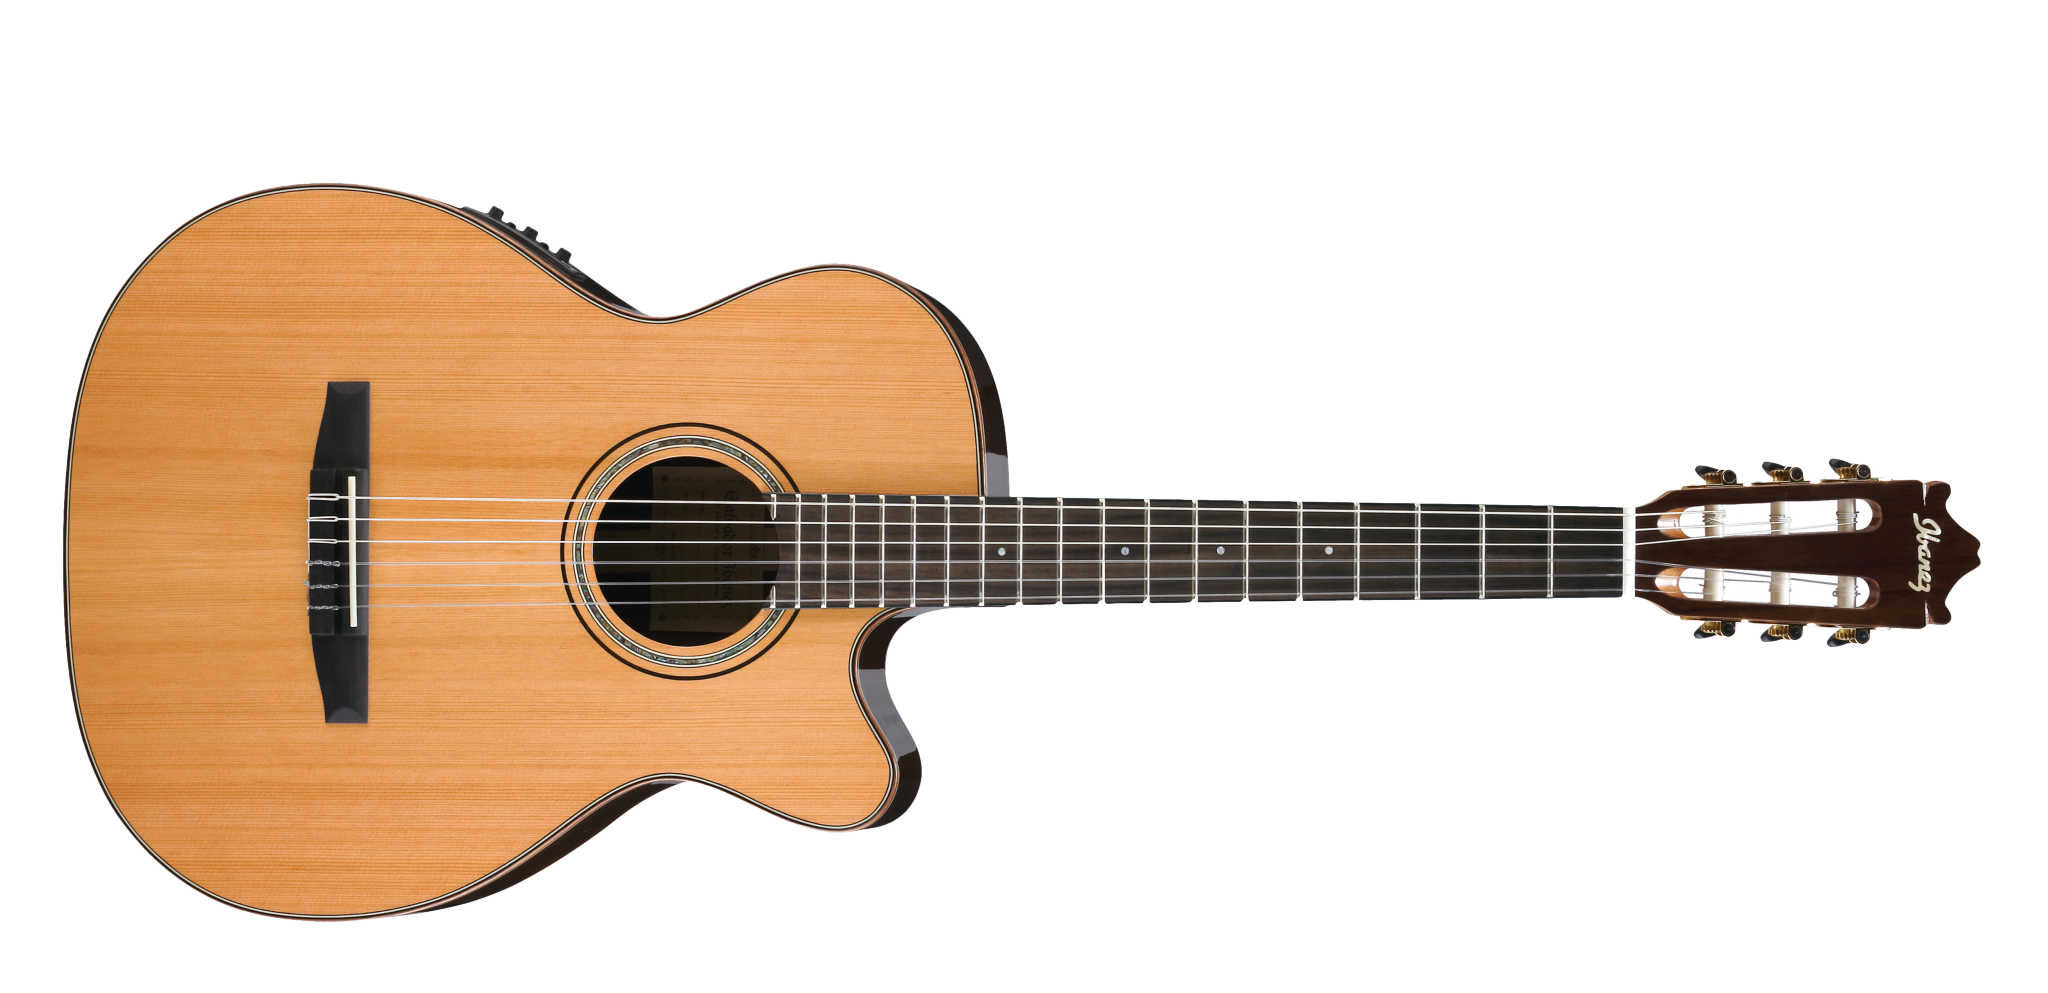 Acoustic Classic Guitar PNG Image.